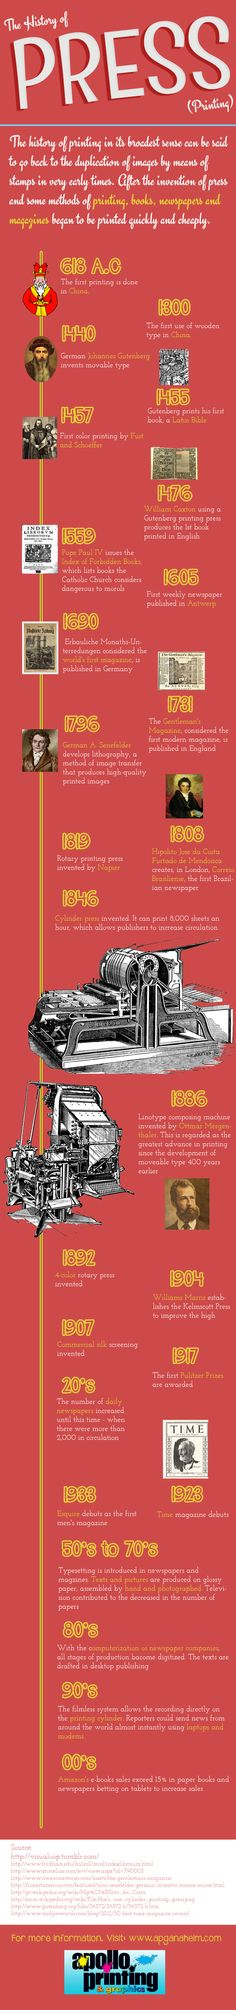 The History Of Press Printing [INFOGRAPHIC] #printing #press